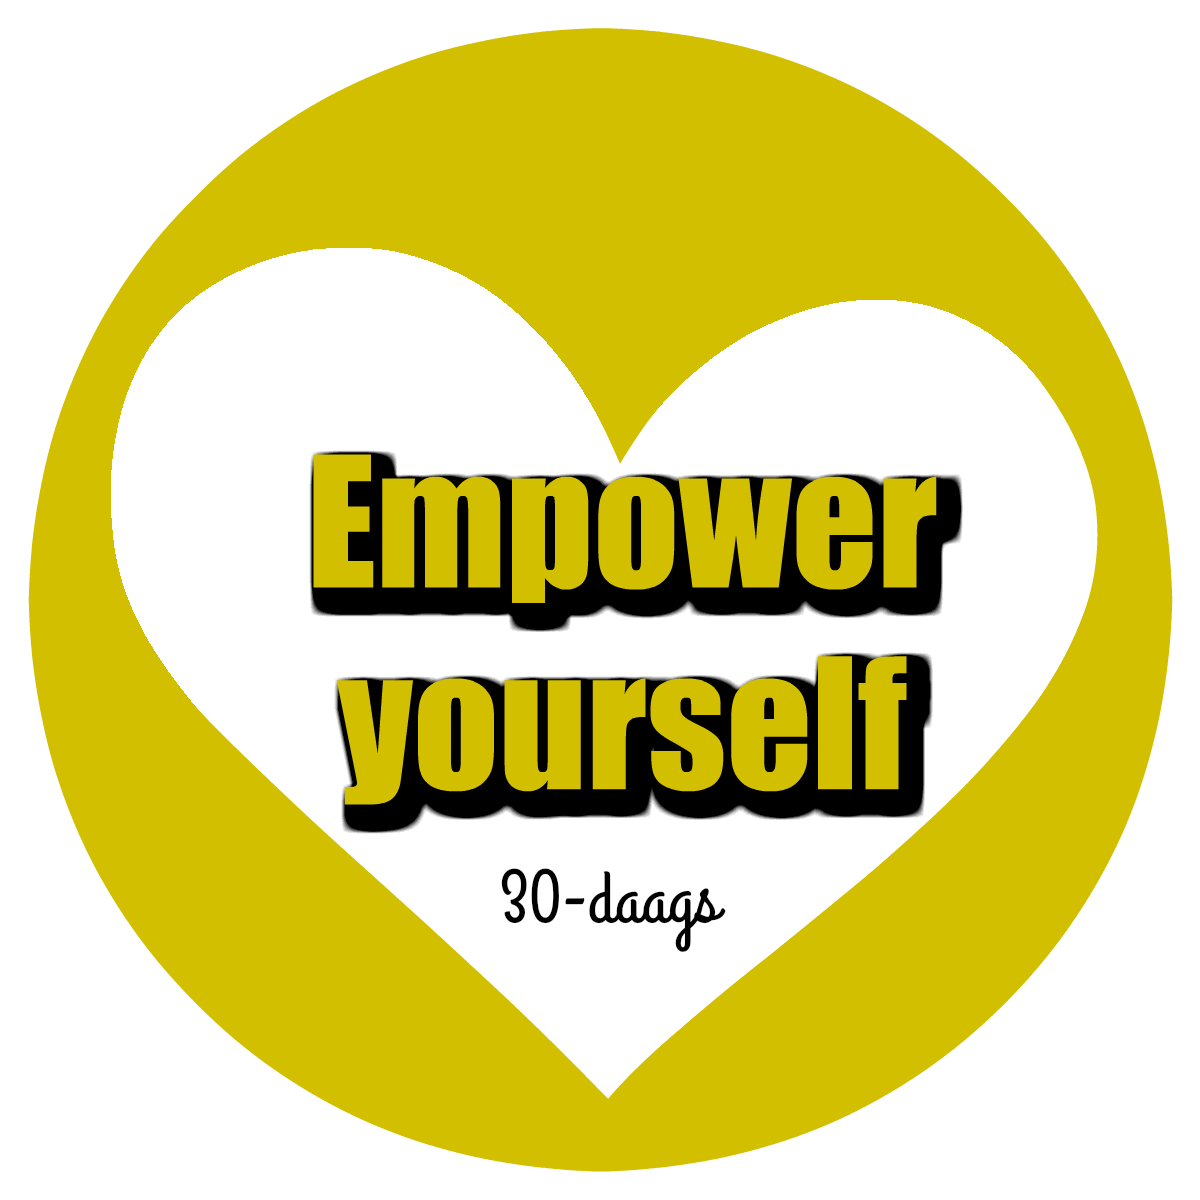 empower yourself 30-daagse Cherryl Challenges